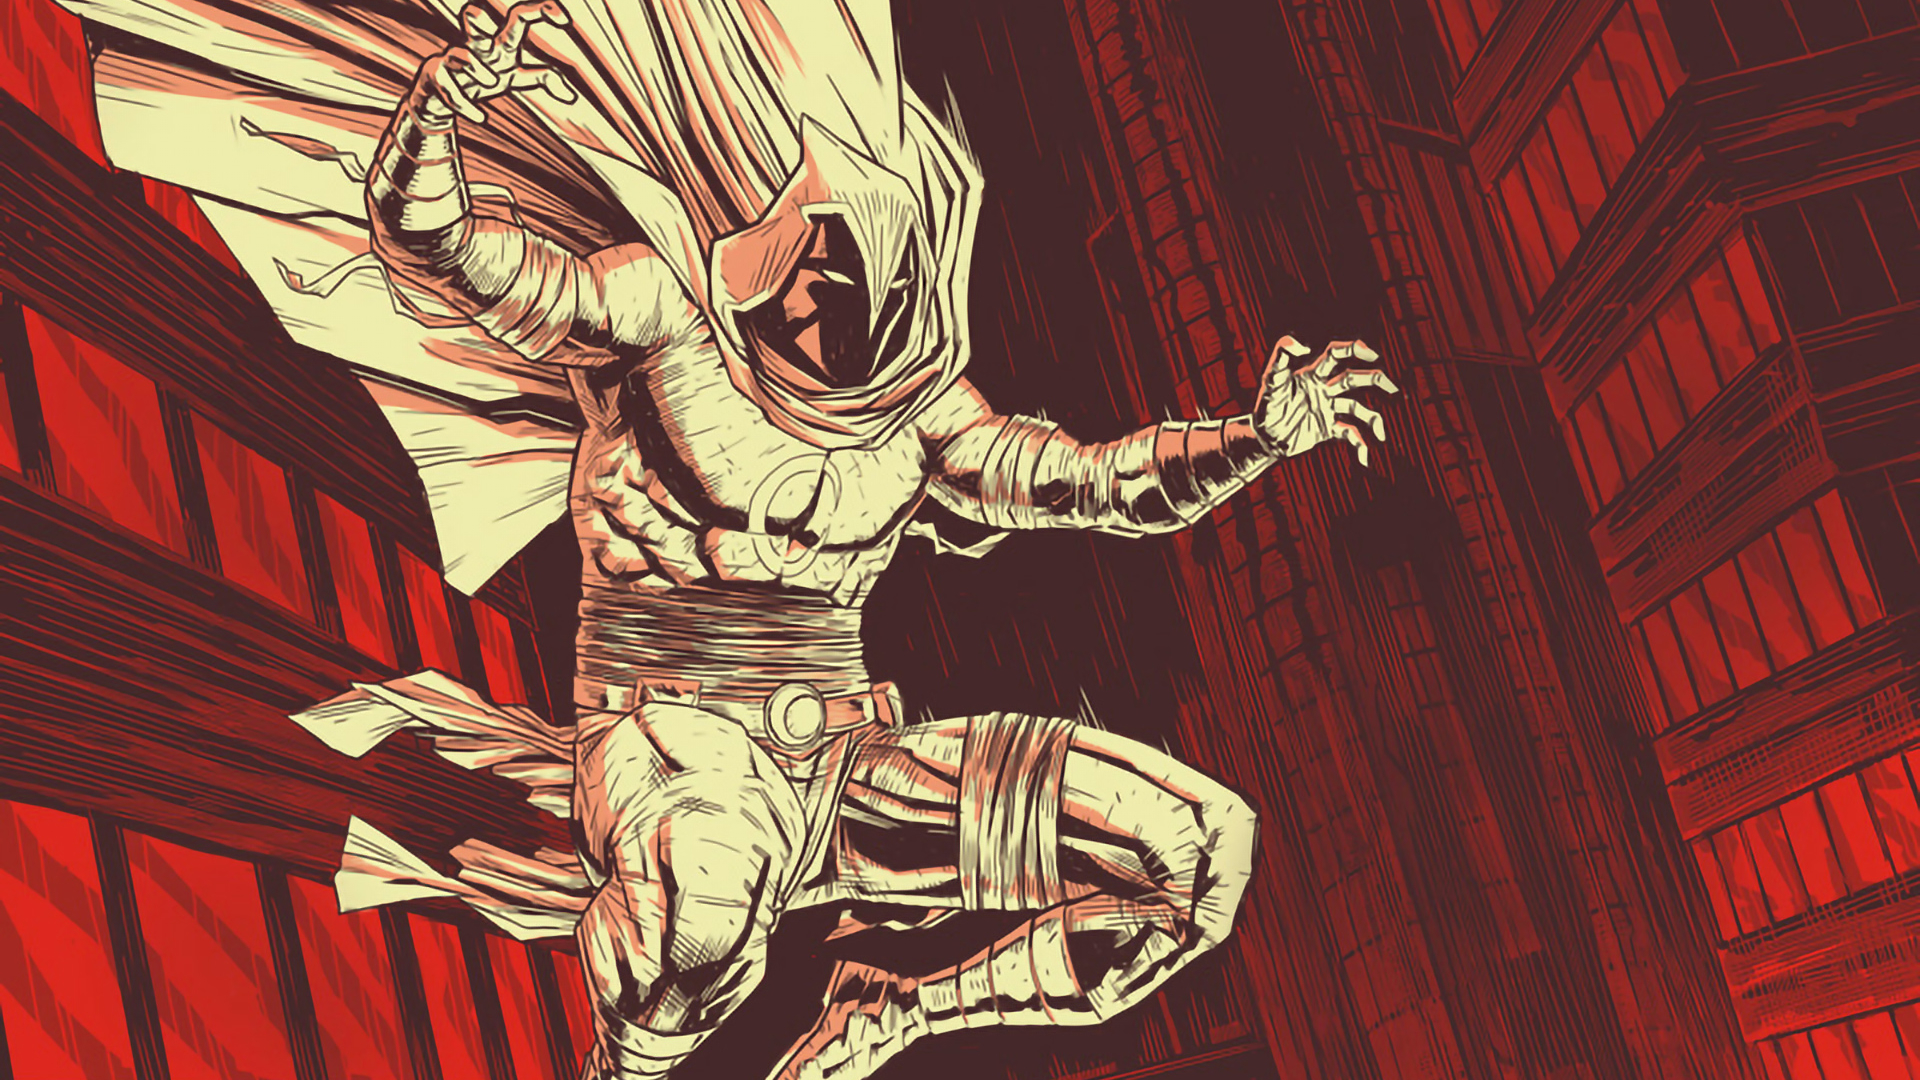 1920x1080 Moon Knight Marvel Comic Art 1080p Laptop Full Hd Wallpaper Hd Artist 4k Wallpapers Images Photos And Background